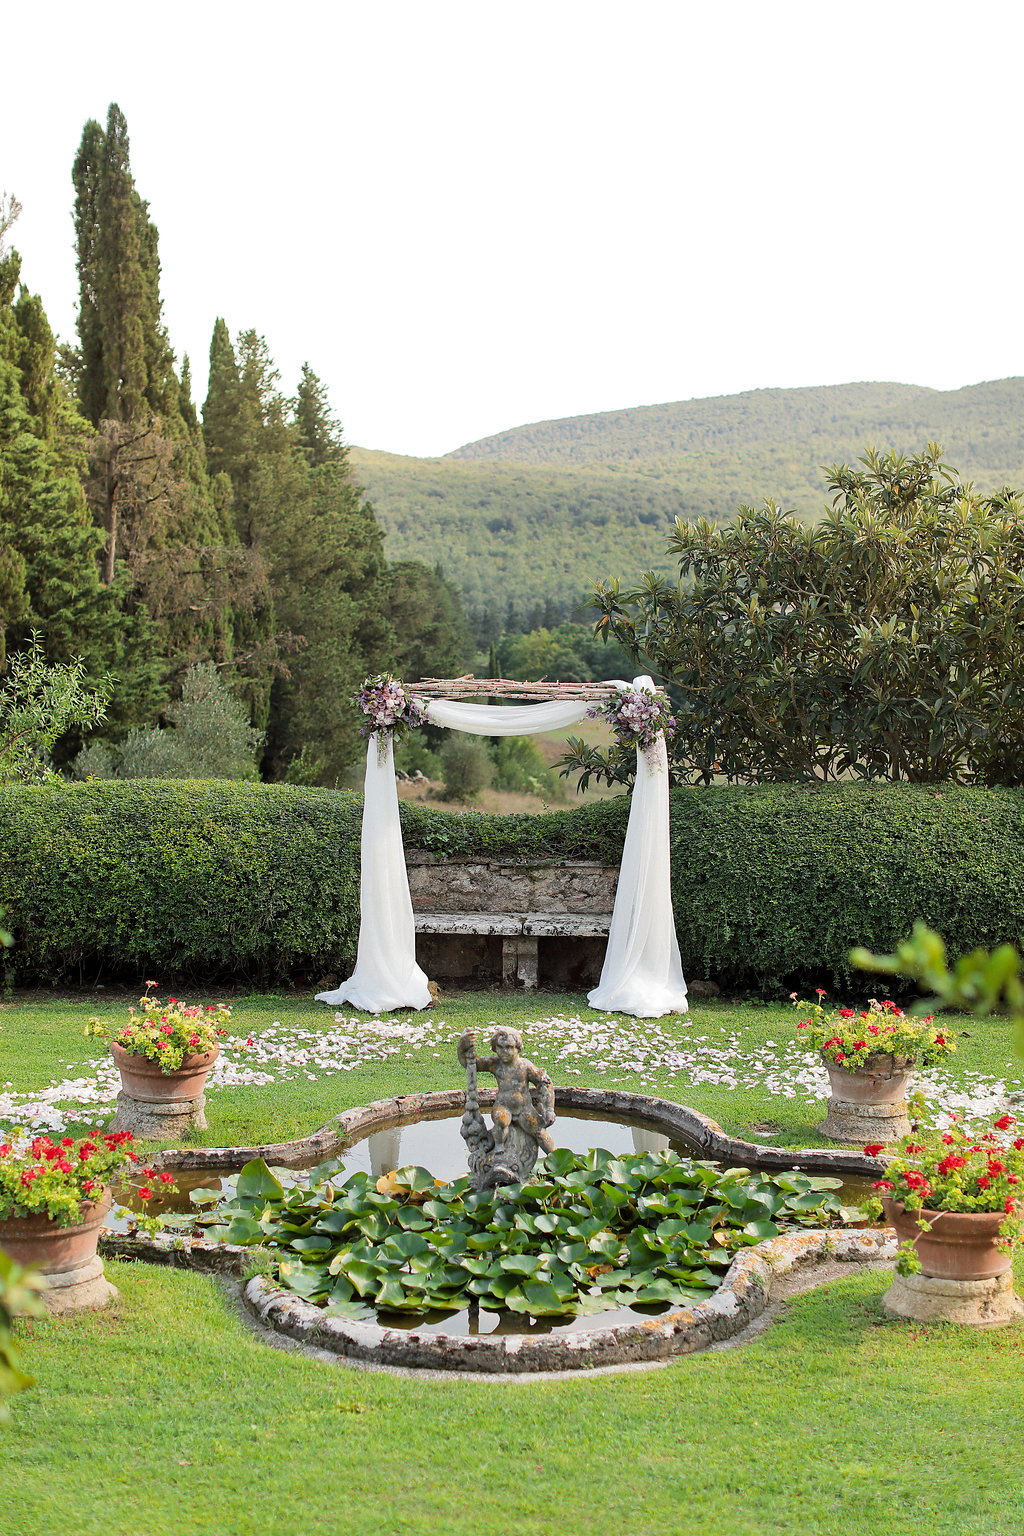 Luxury wedding blessing with secret garden lighting Tuscany arch